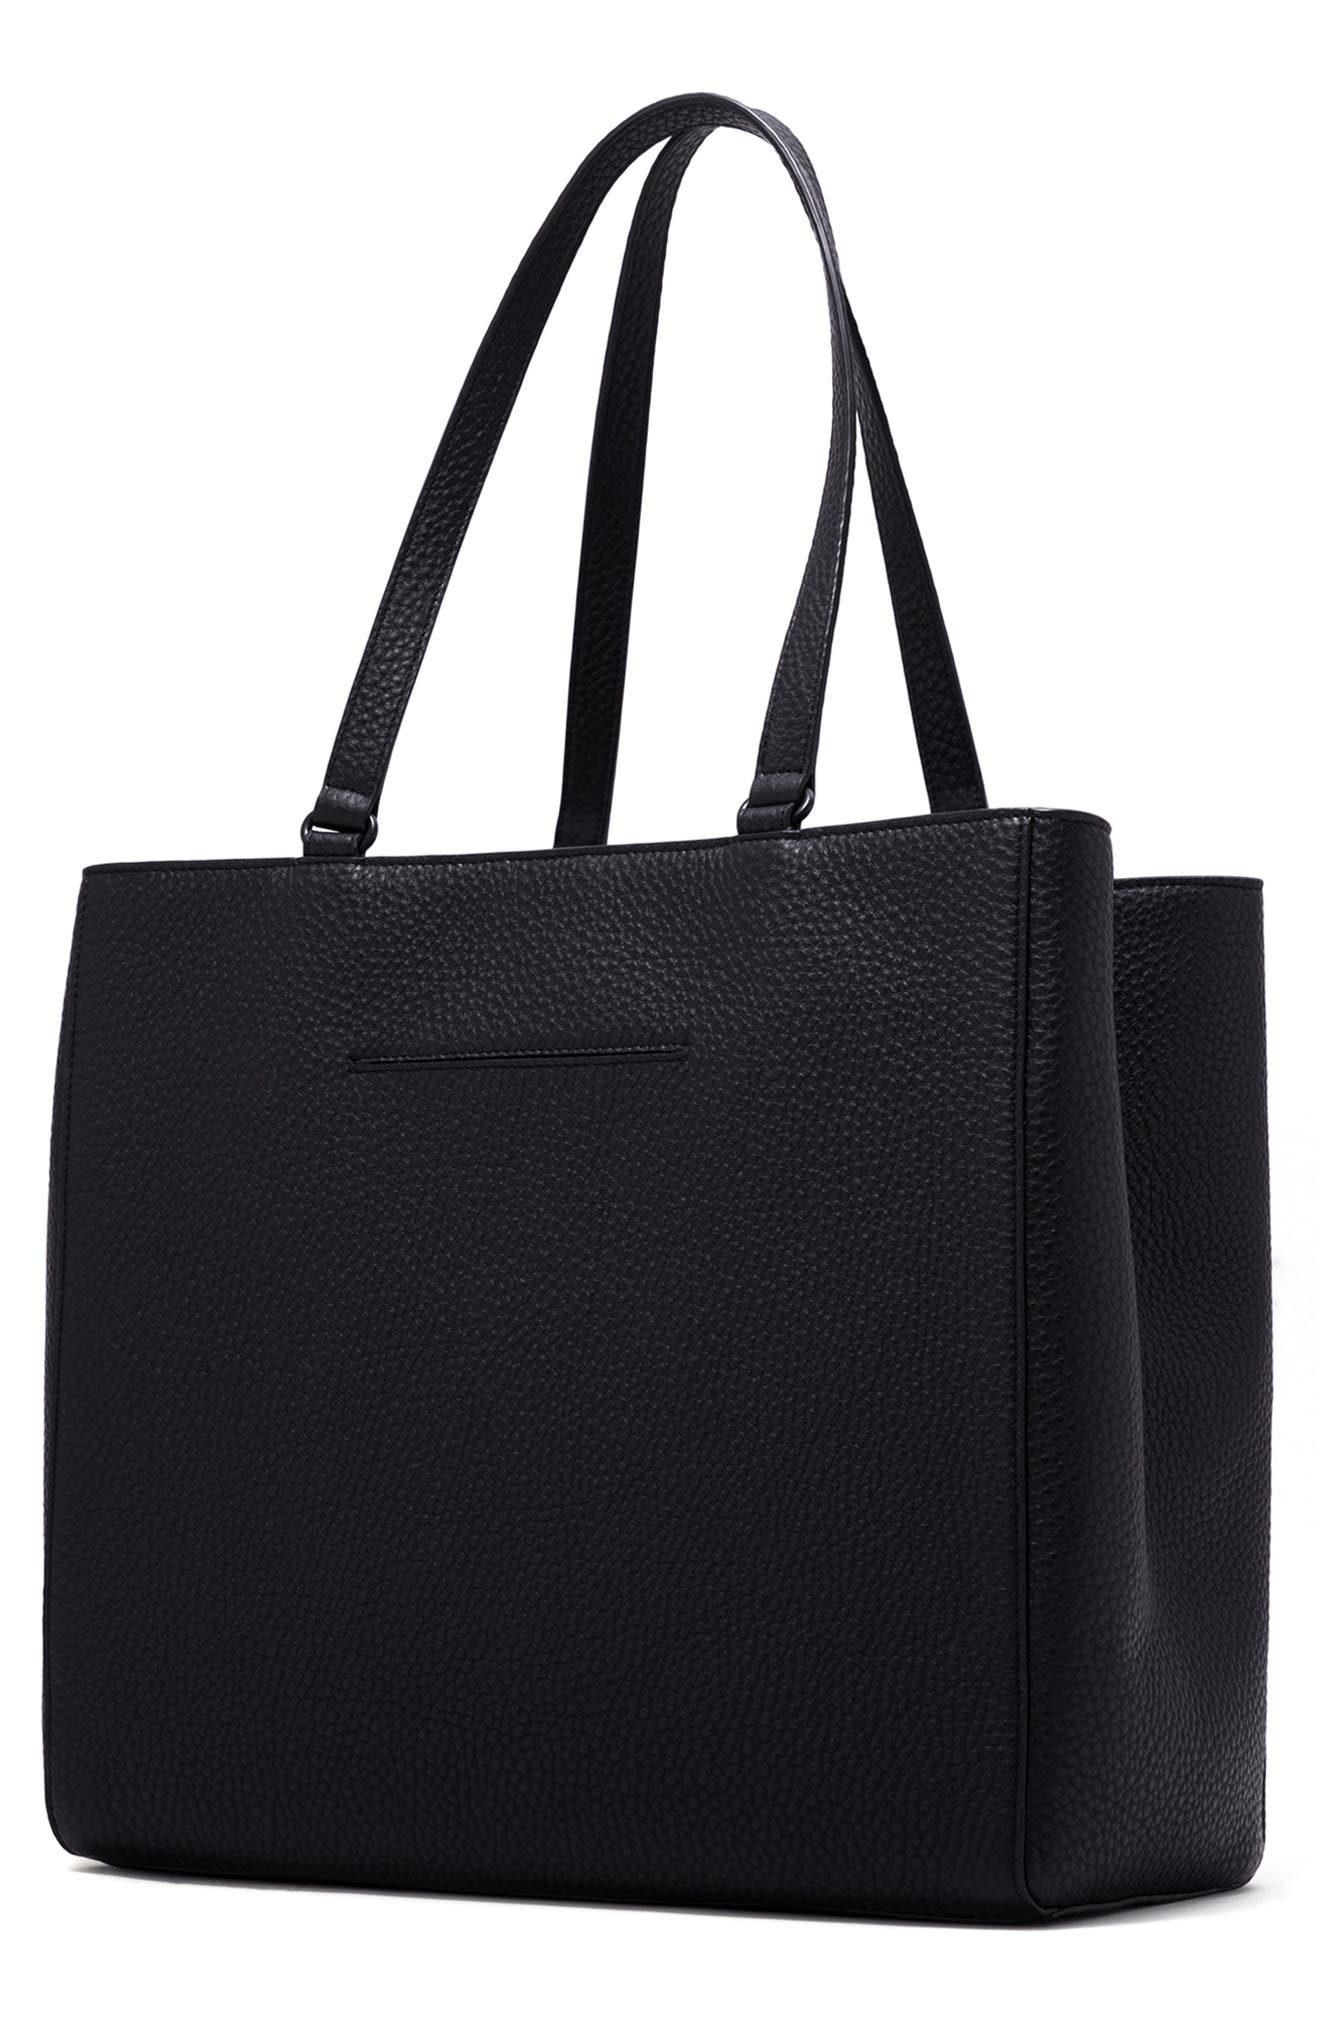 DAGNE DOVER, Large Allyn Leather Tote, Alternate thumbnail 2, color, ONYX